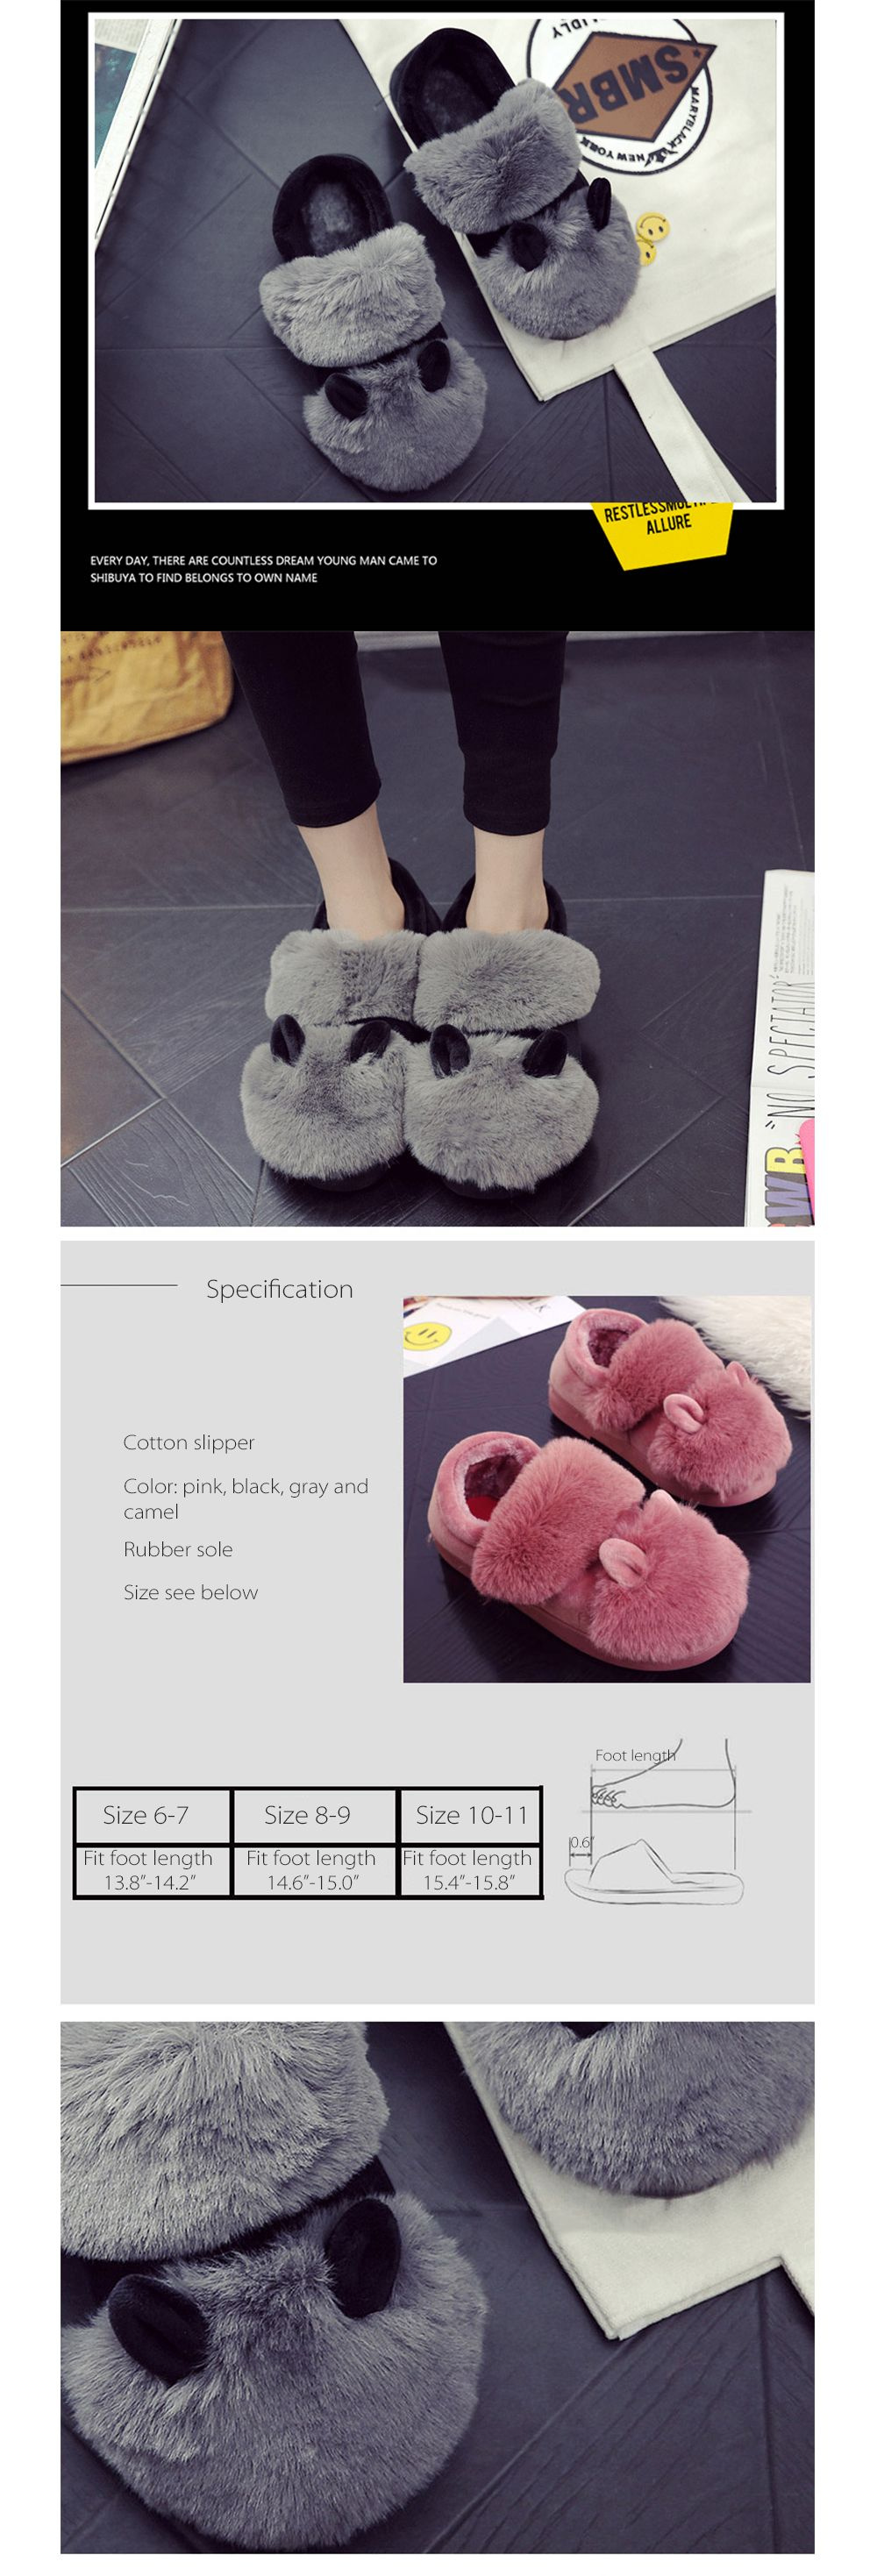 Winter Cotton Non-slip Warm Fur Slippers Warm & Cozy